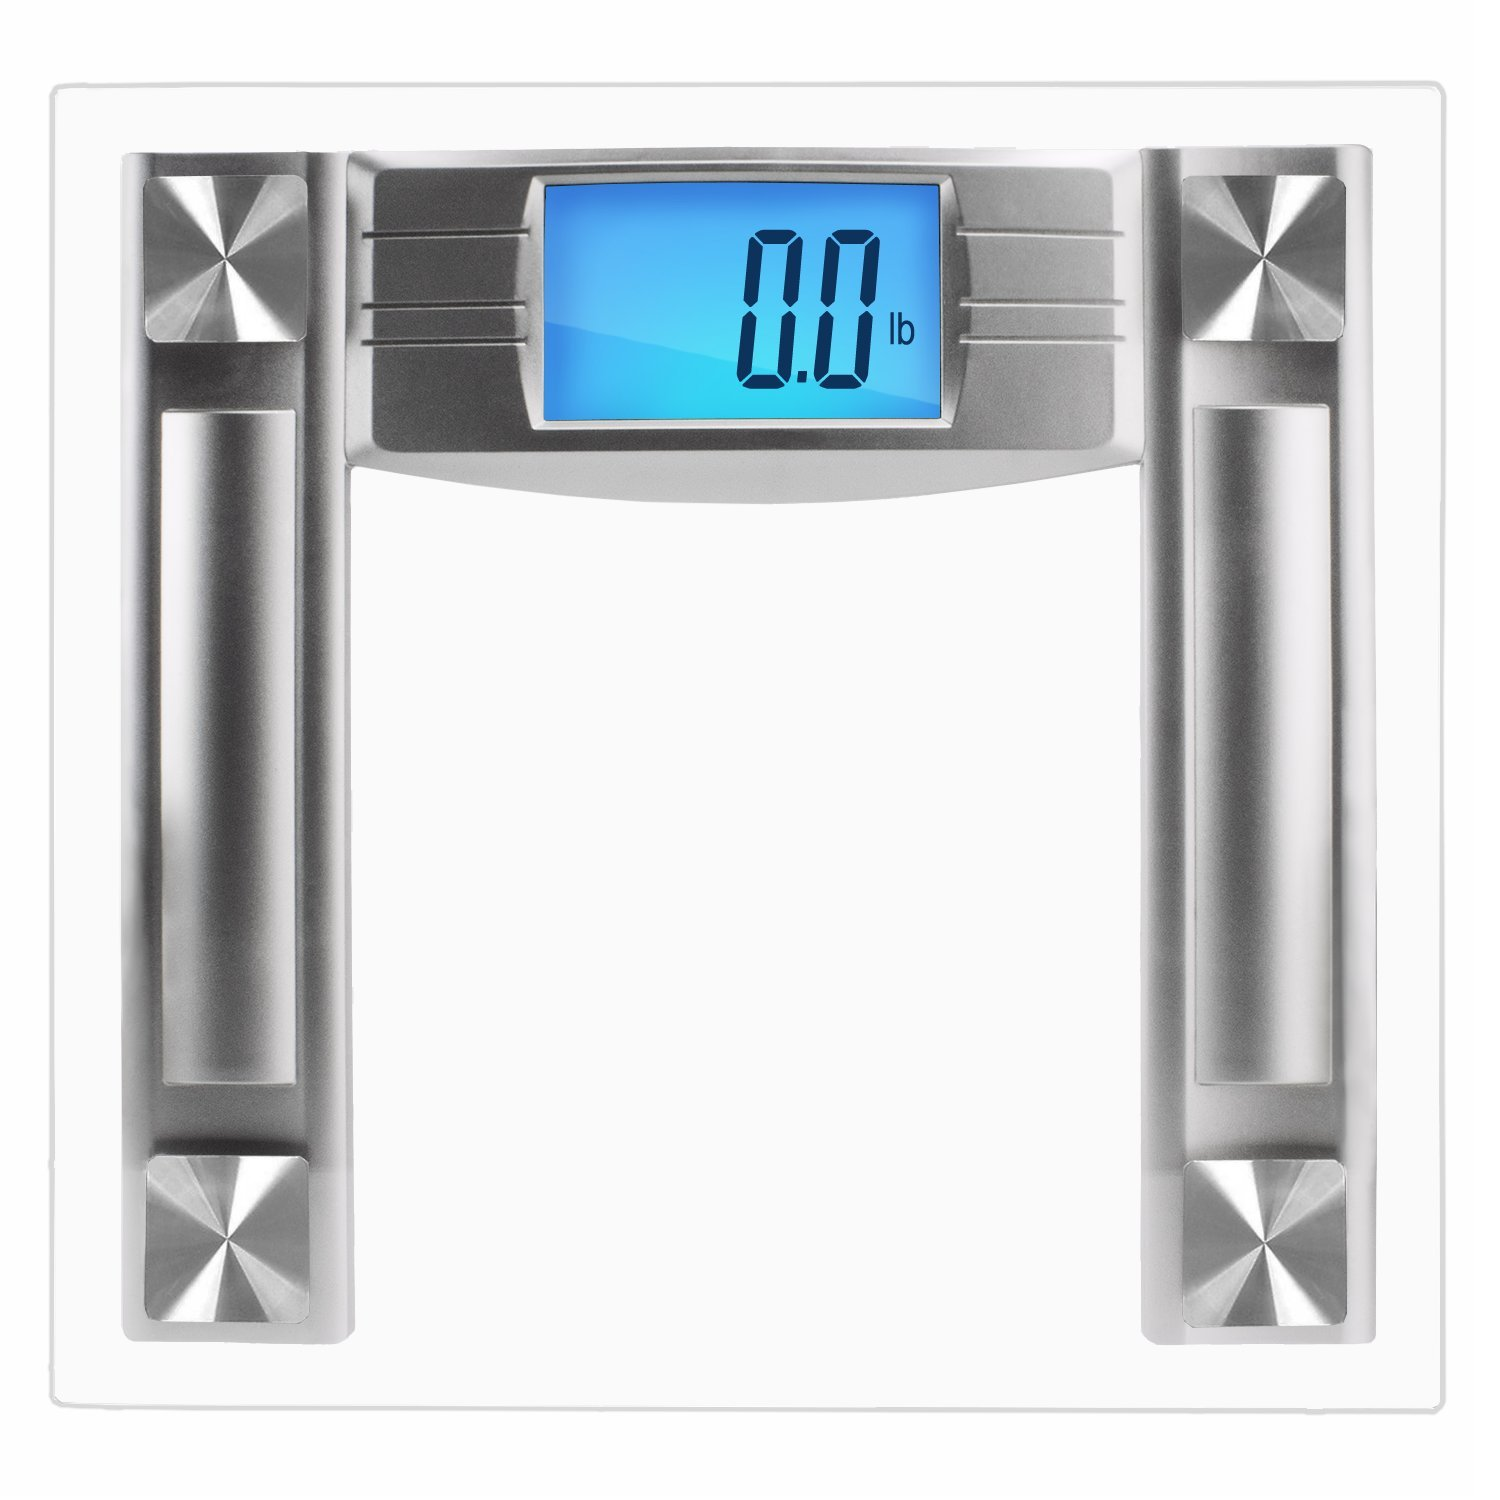 Amazon scale bathroom - Amazon Com Slimsmart Modern Bathroom Scale With Large Digital Display Automatic Step On Start Technology For Tracking Diet Weight Maximum Capacity Of